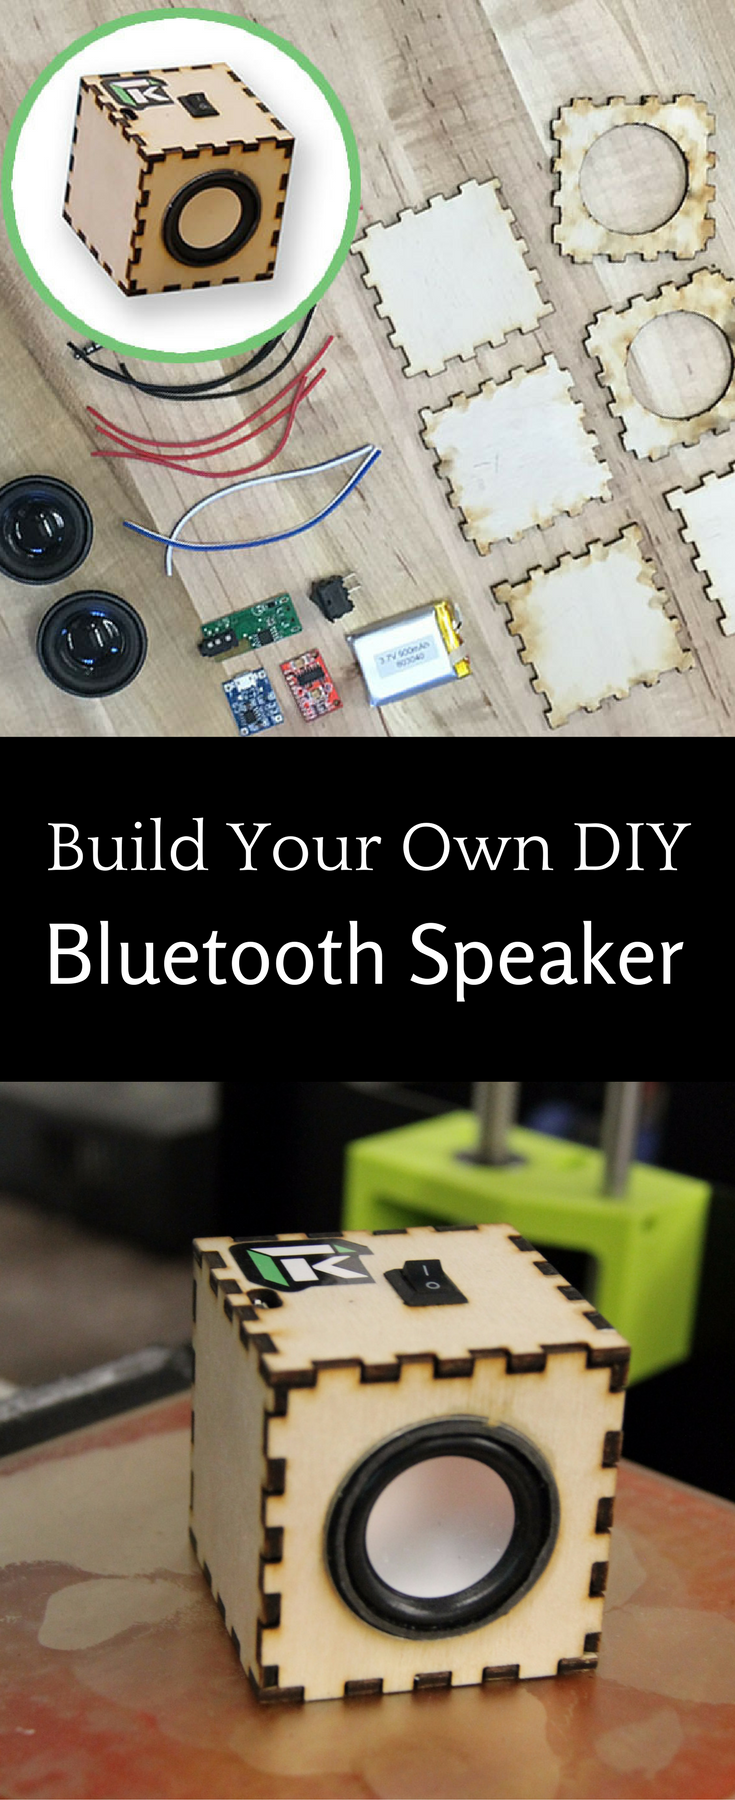 Create your own DIY Bluetooth Speaker with this fun